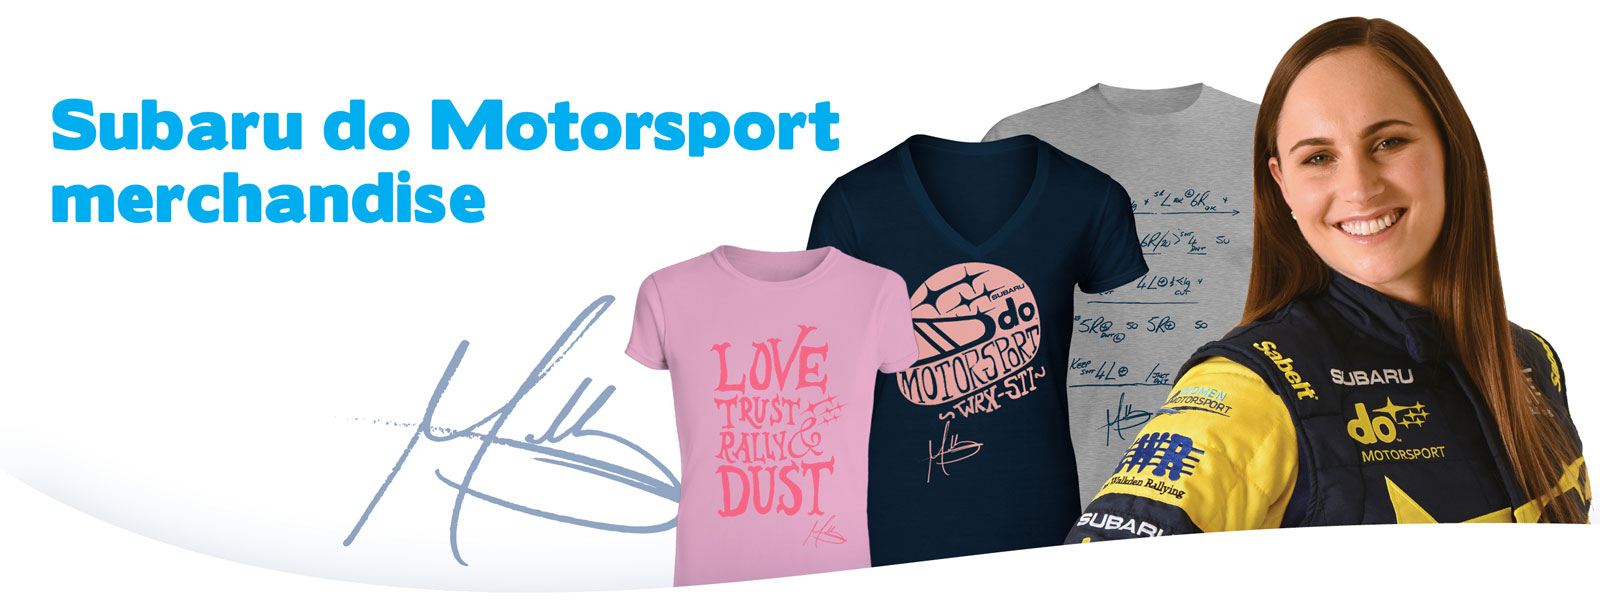 motorsport mechandise